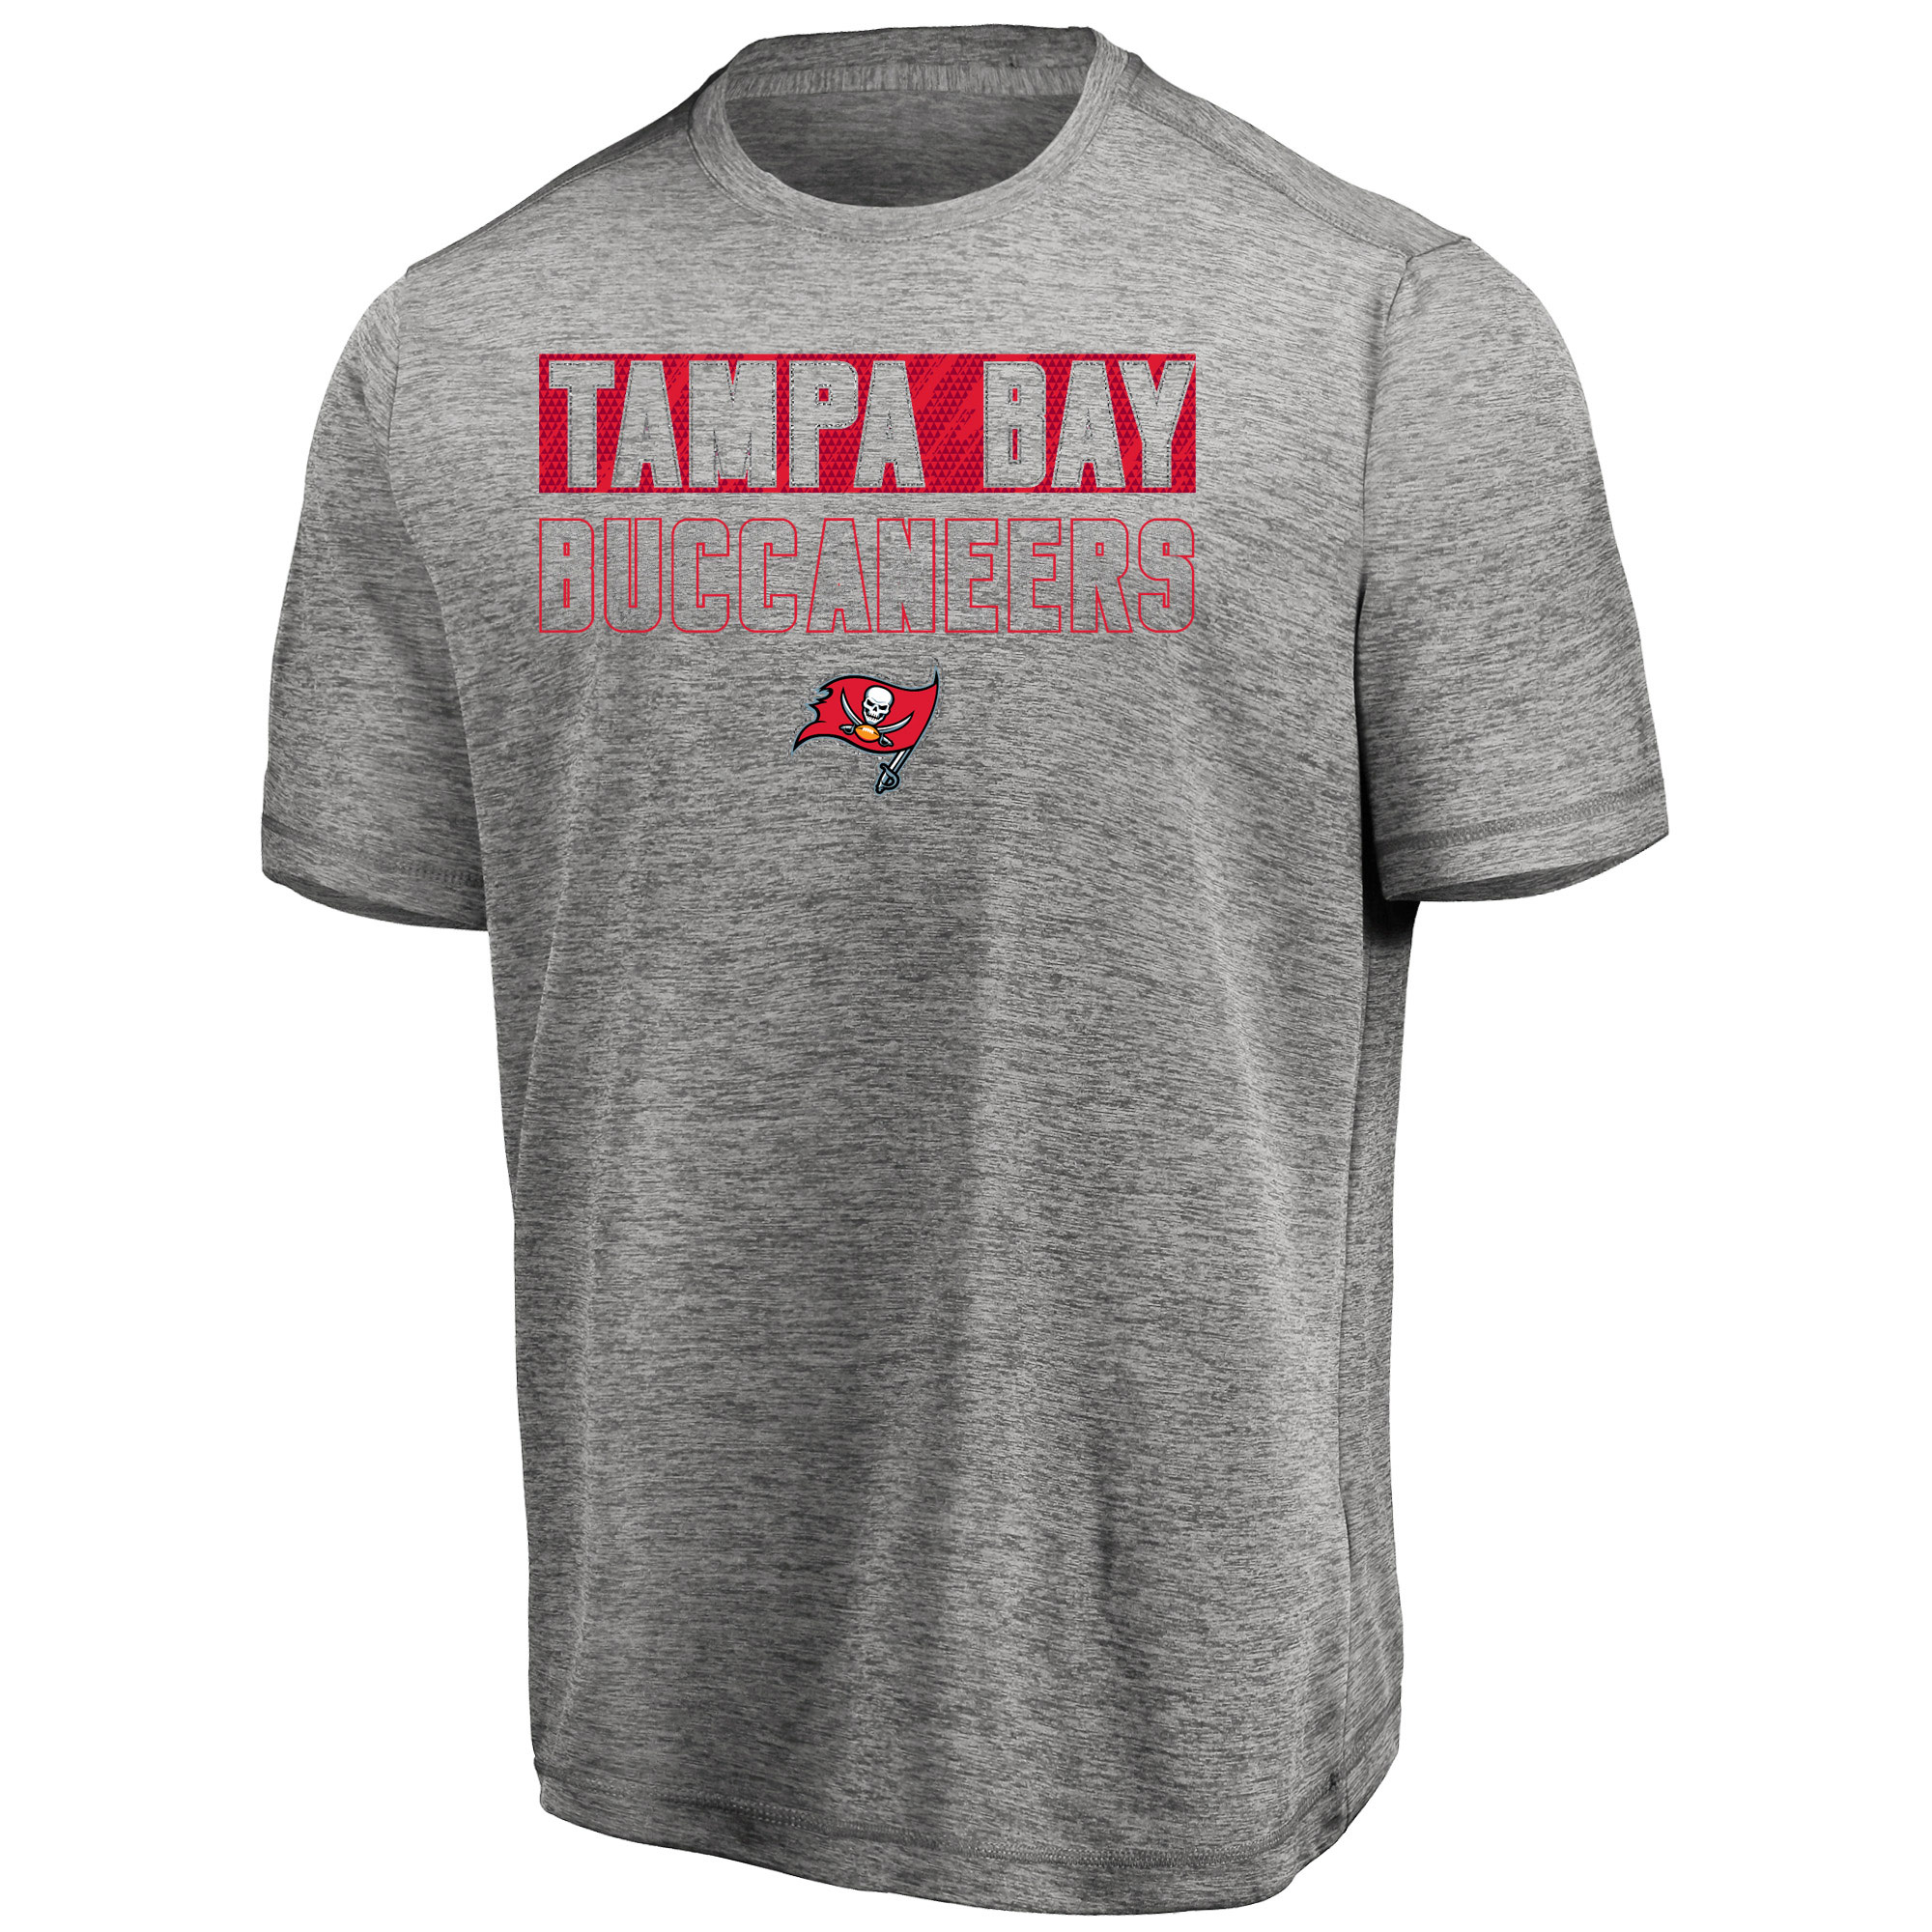 Men's Majestic Heathered Gray Tampa Bay Buccaneers Big & Tall Last Chance Ply Reflective T-Shirt